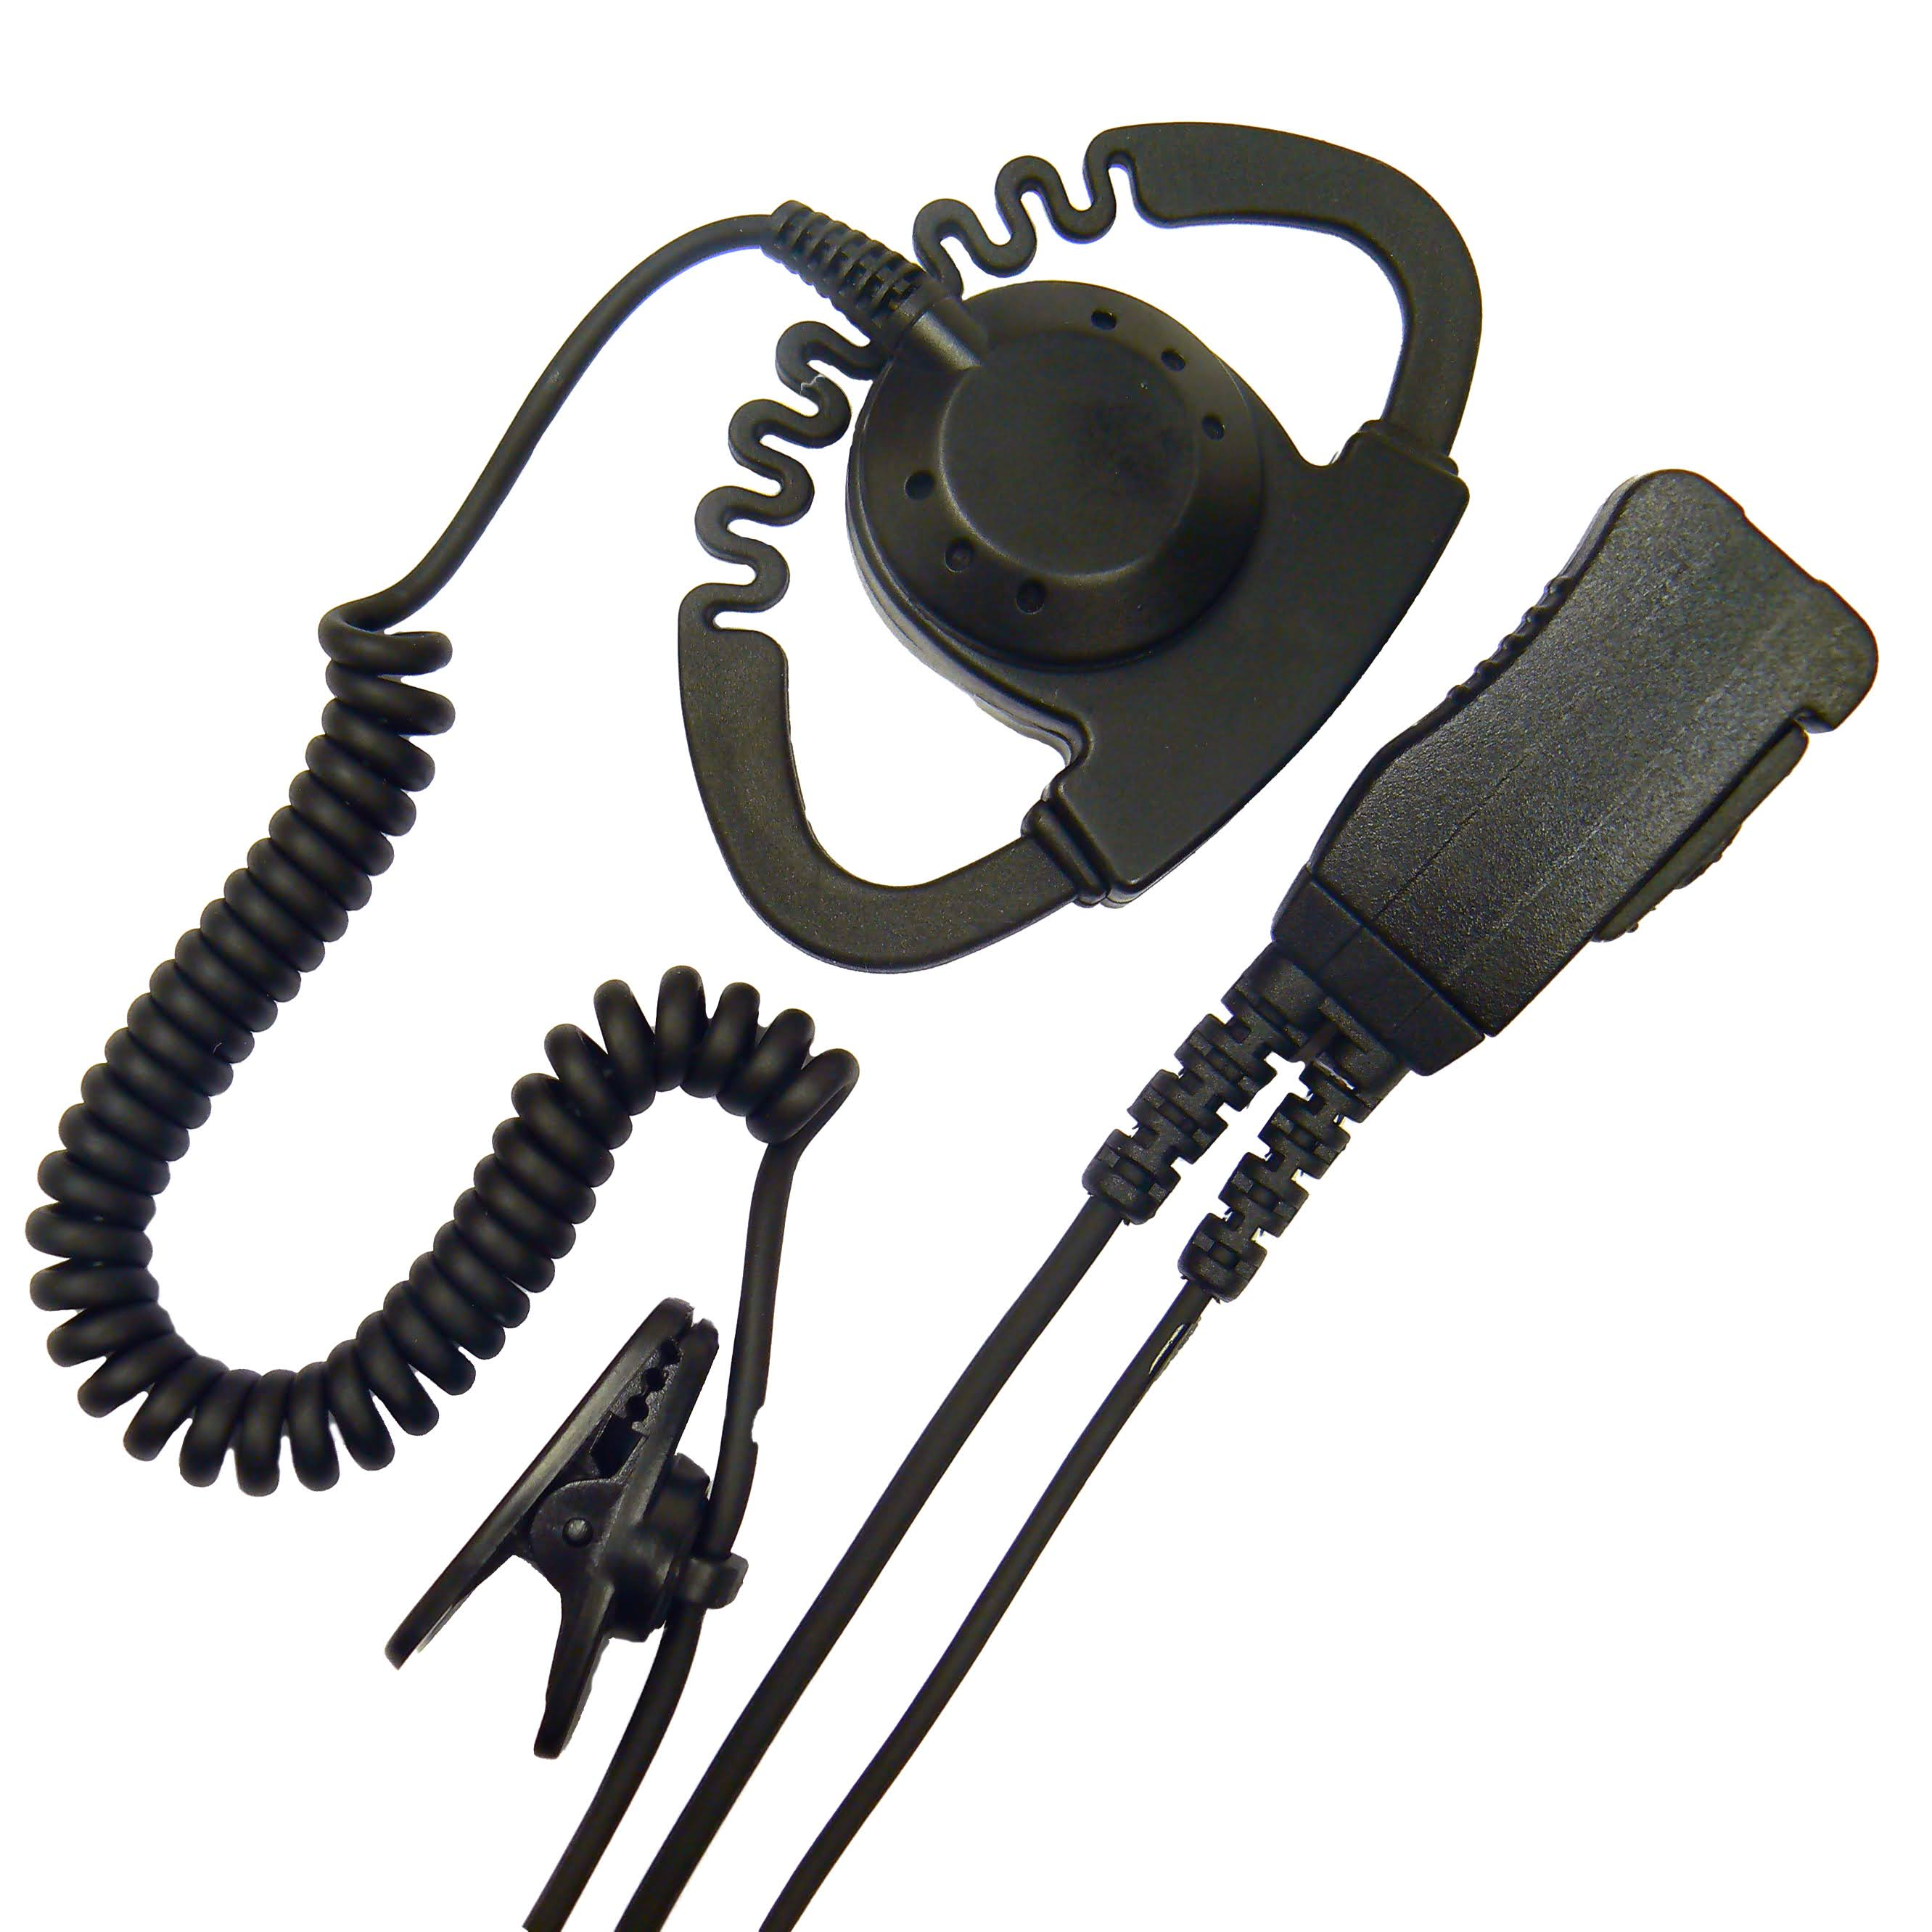 D-Shape earpiece PTT